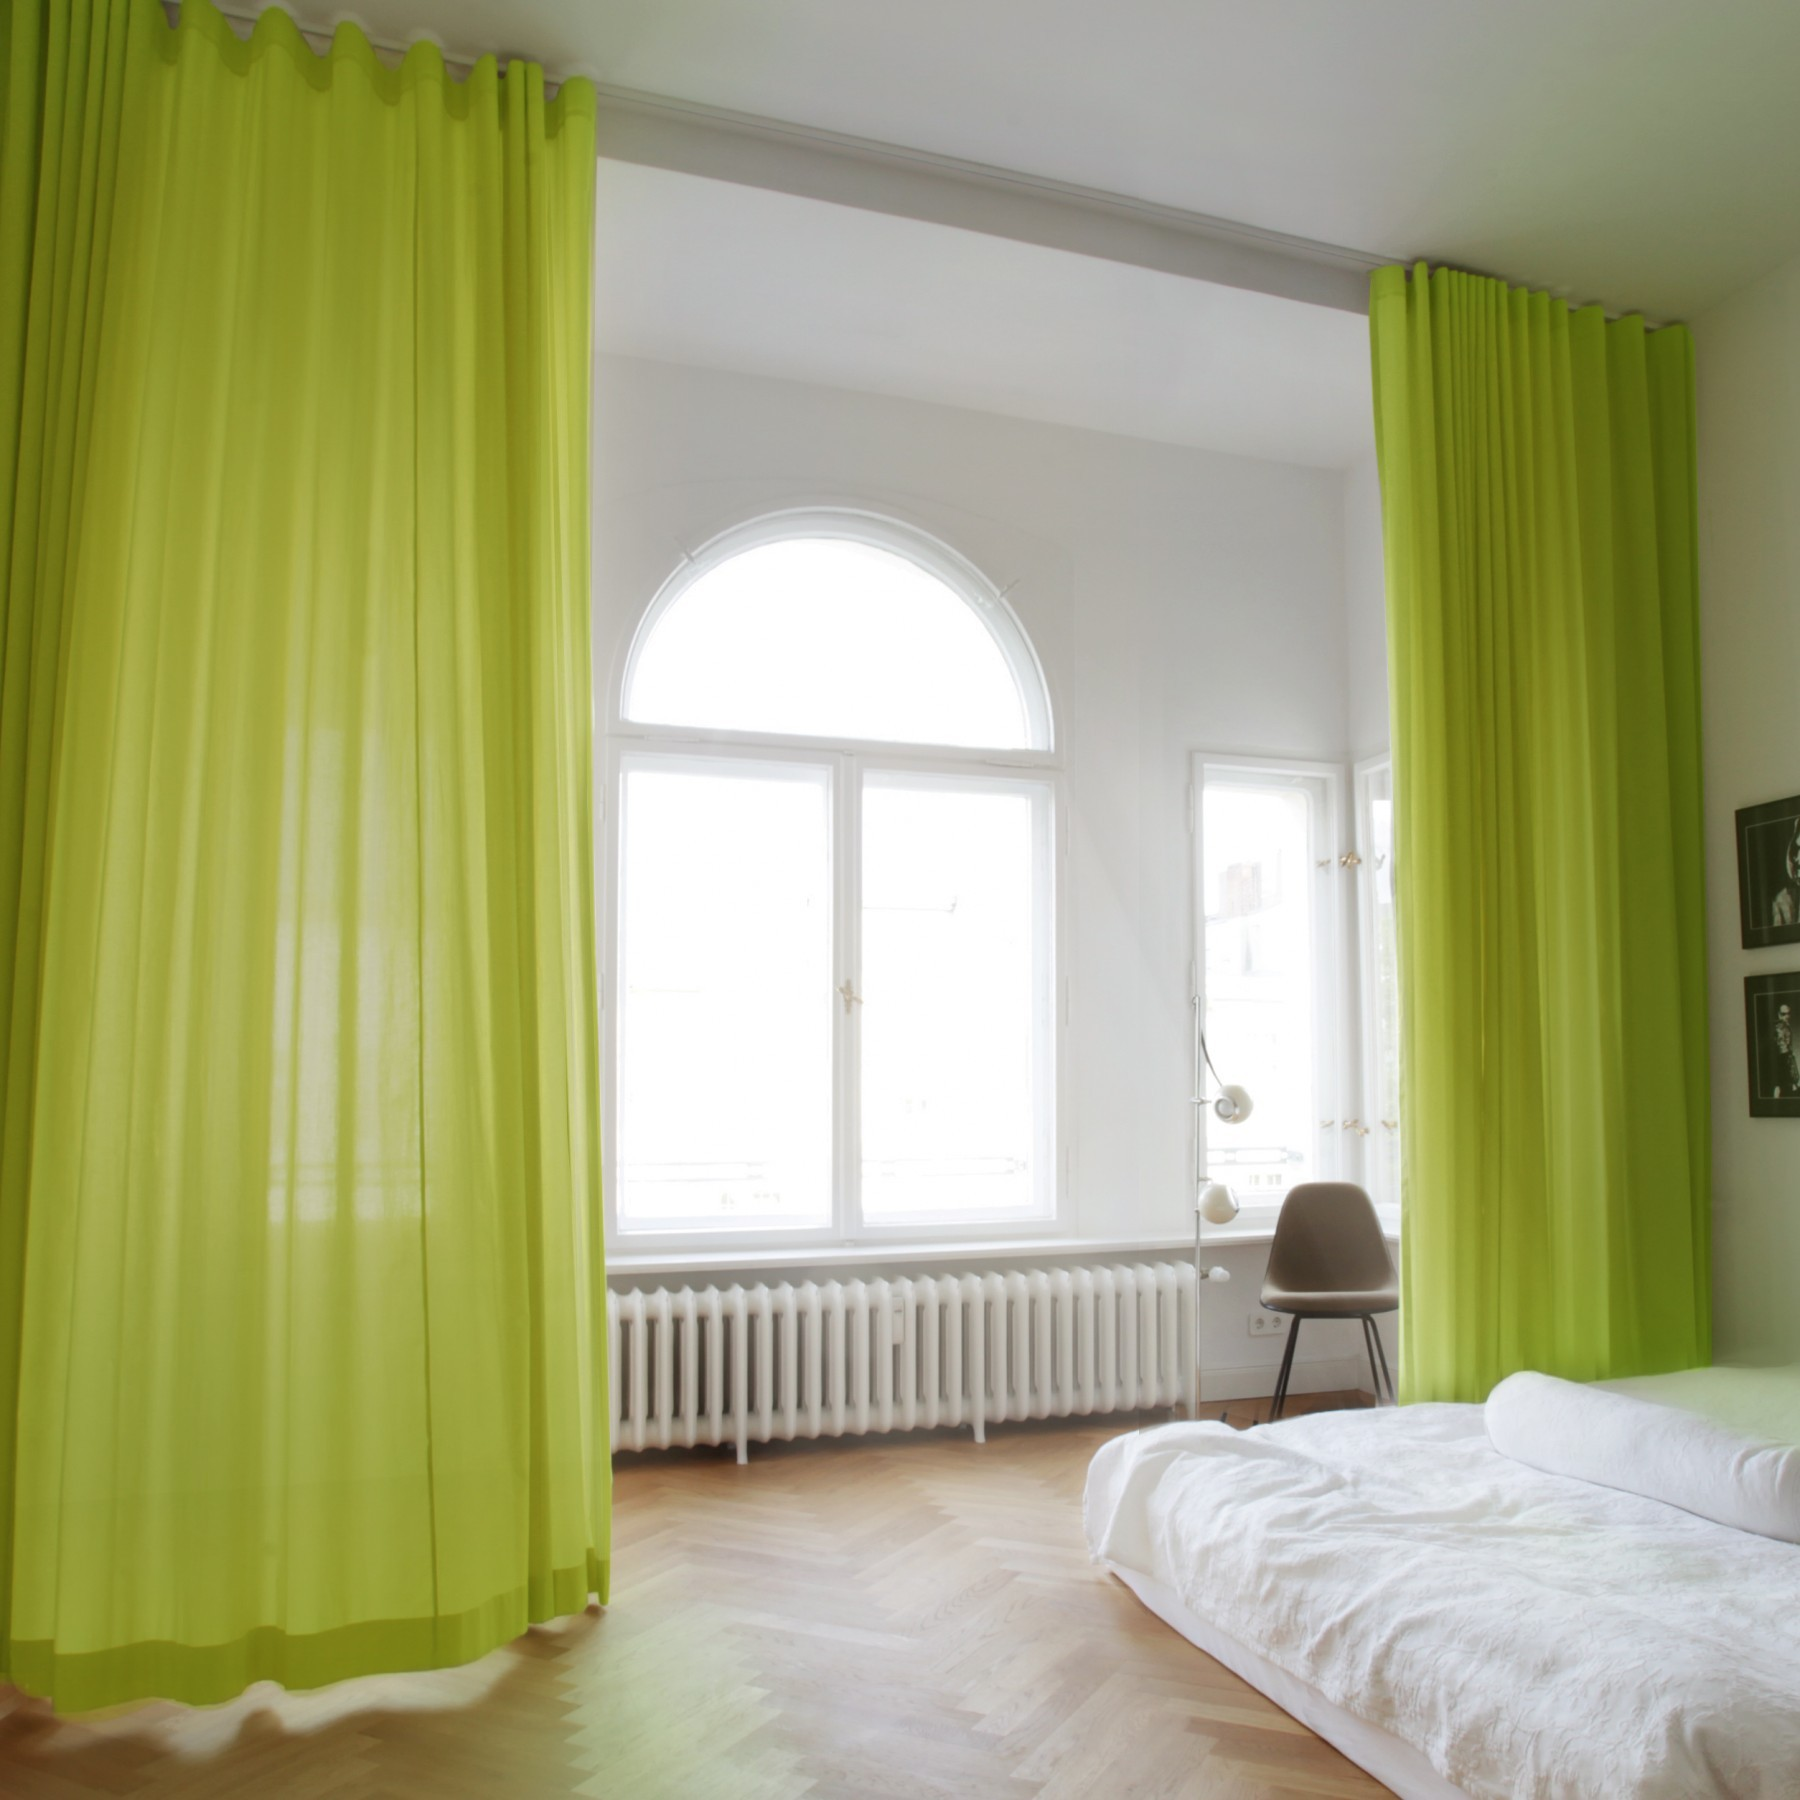 gr ner vorhang adele mit deckenschiene linus the curtain. Black Bedroom Furniture Sets. Home Design Ideas